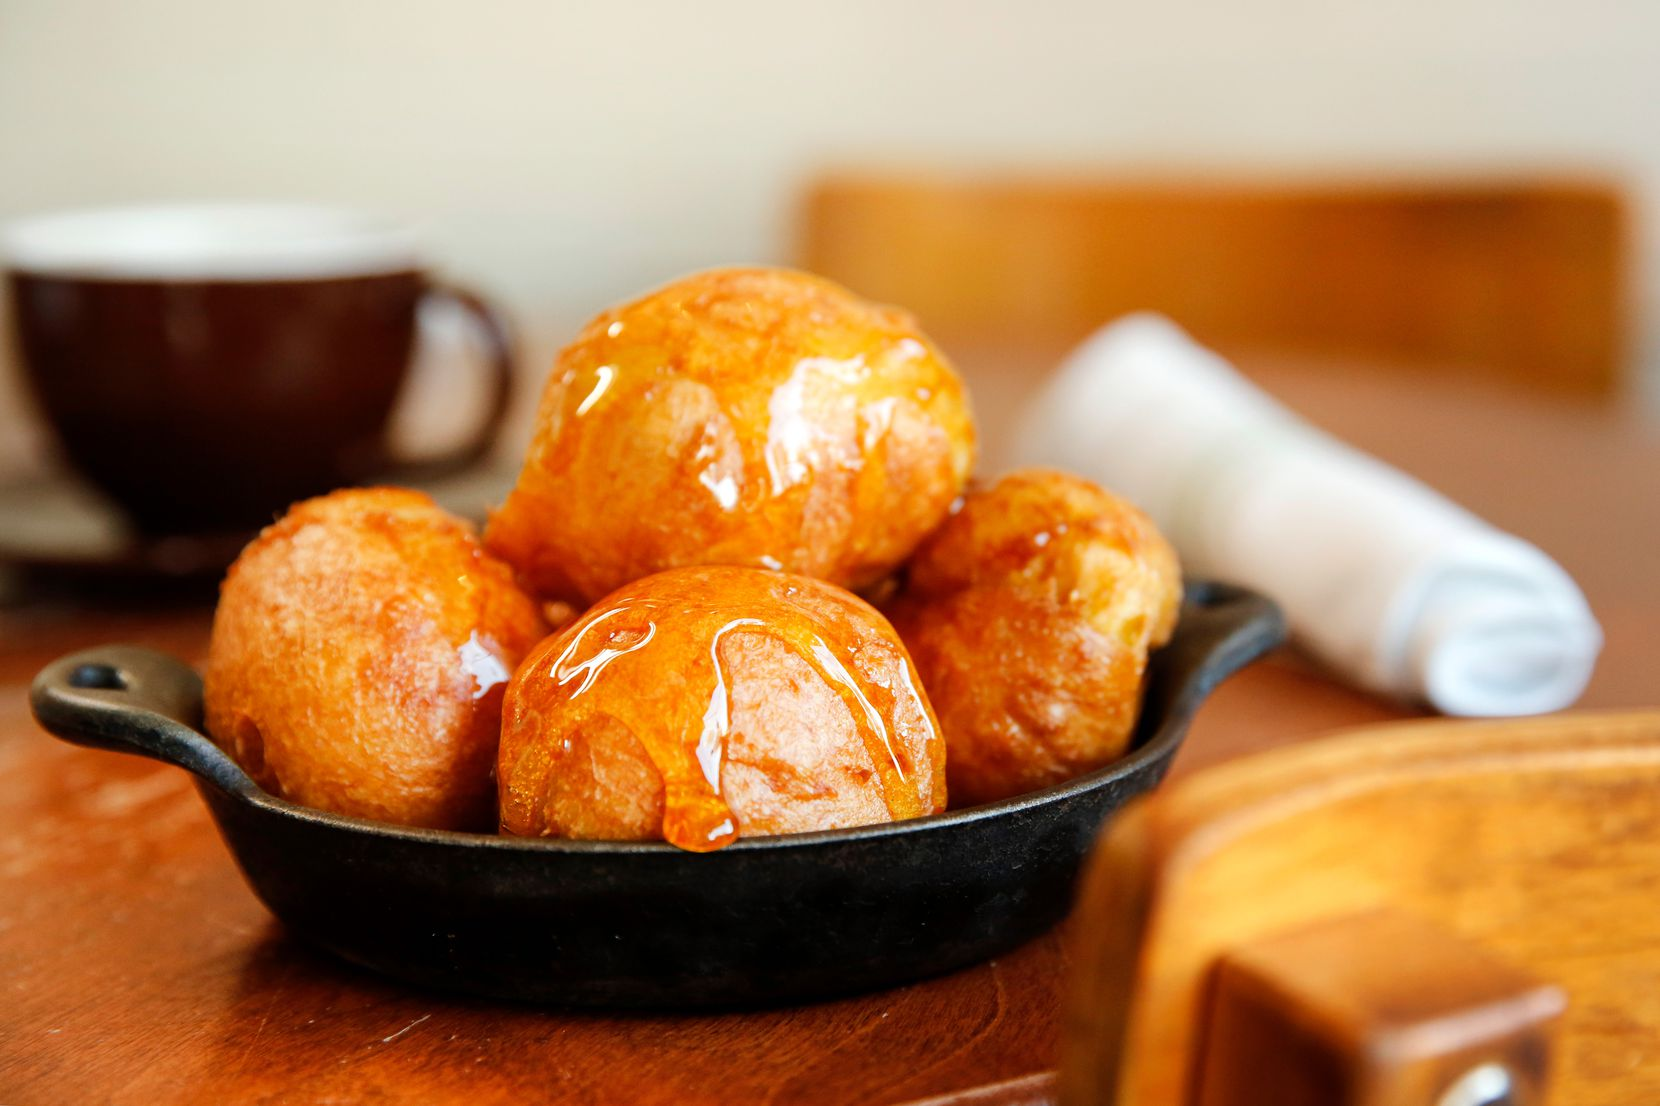 Fashioned from eggy pate a choux and drizzed with local honey, Oddfellows' beignets are light and disappear-in-a-flash fabulous.